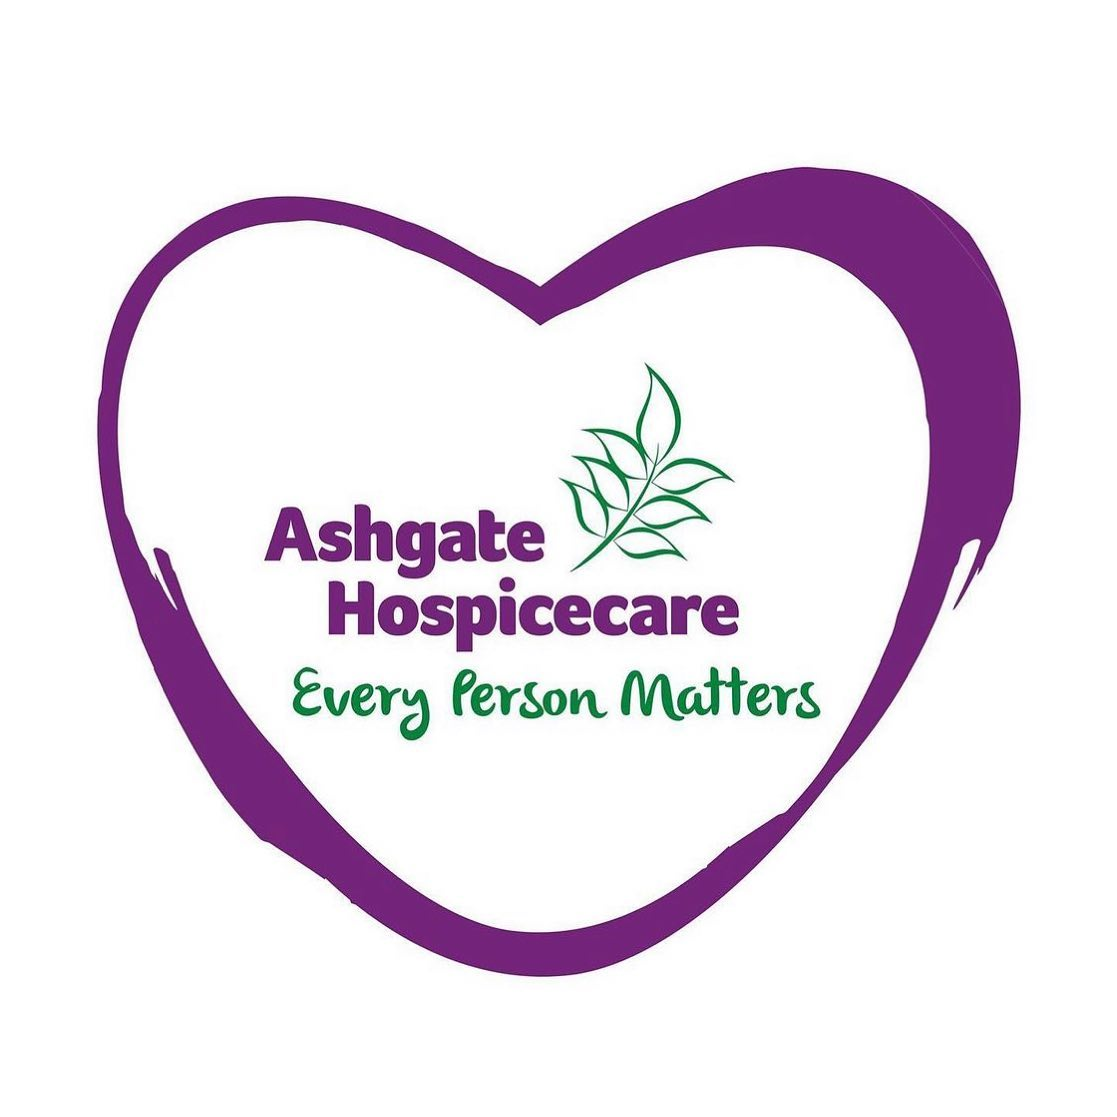 This week's Charity Tuesday goes to @ashgatehospicecare who are joining the Peak District Challen...